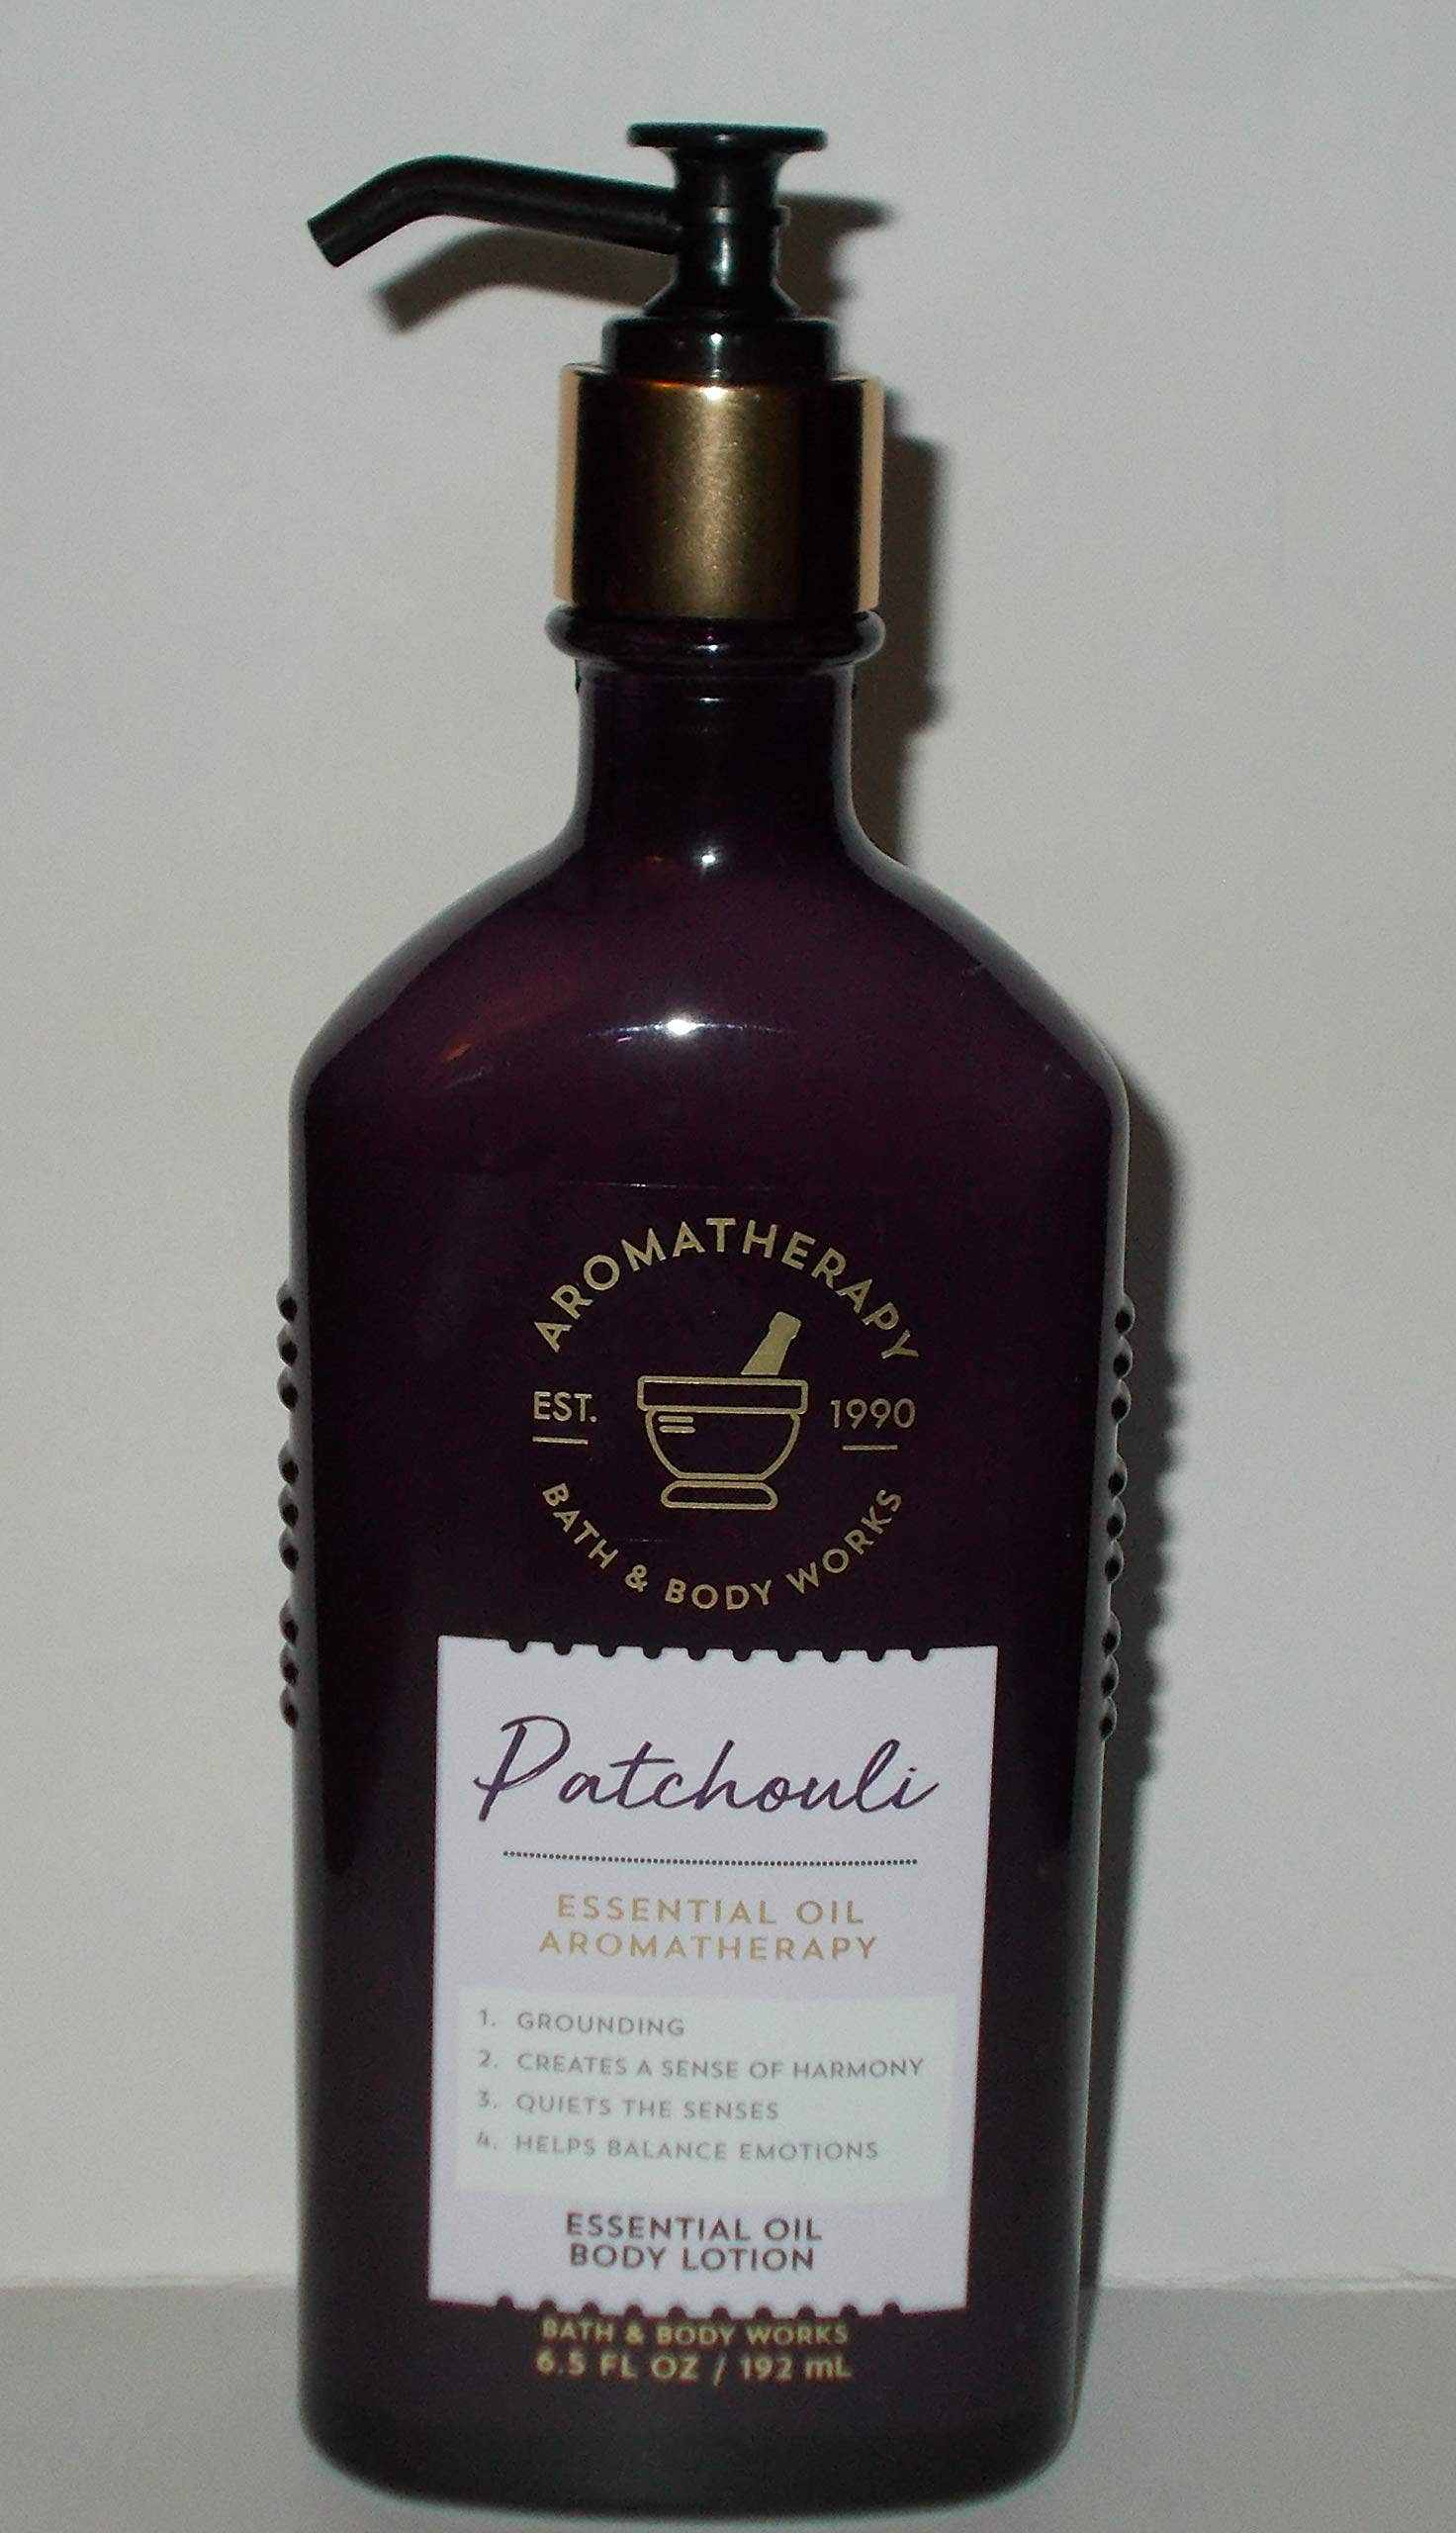 Bath and Body Works Aromatherapy PATCHOULI Essential Oil Body Lotion 6.5 Fluid Ounce